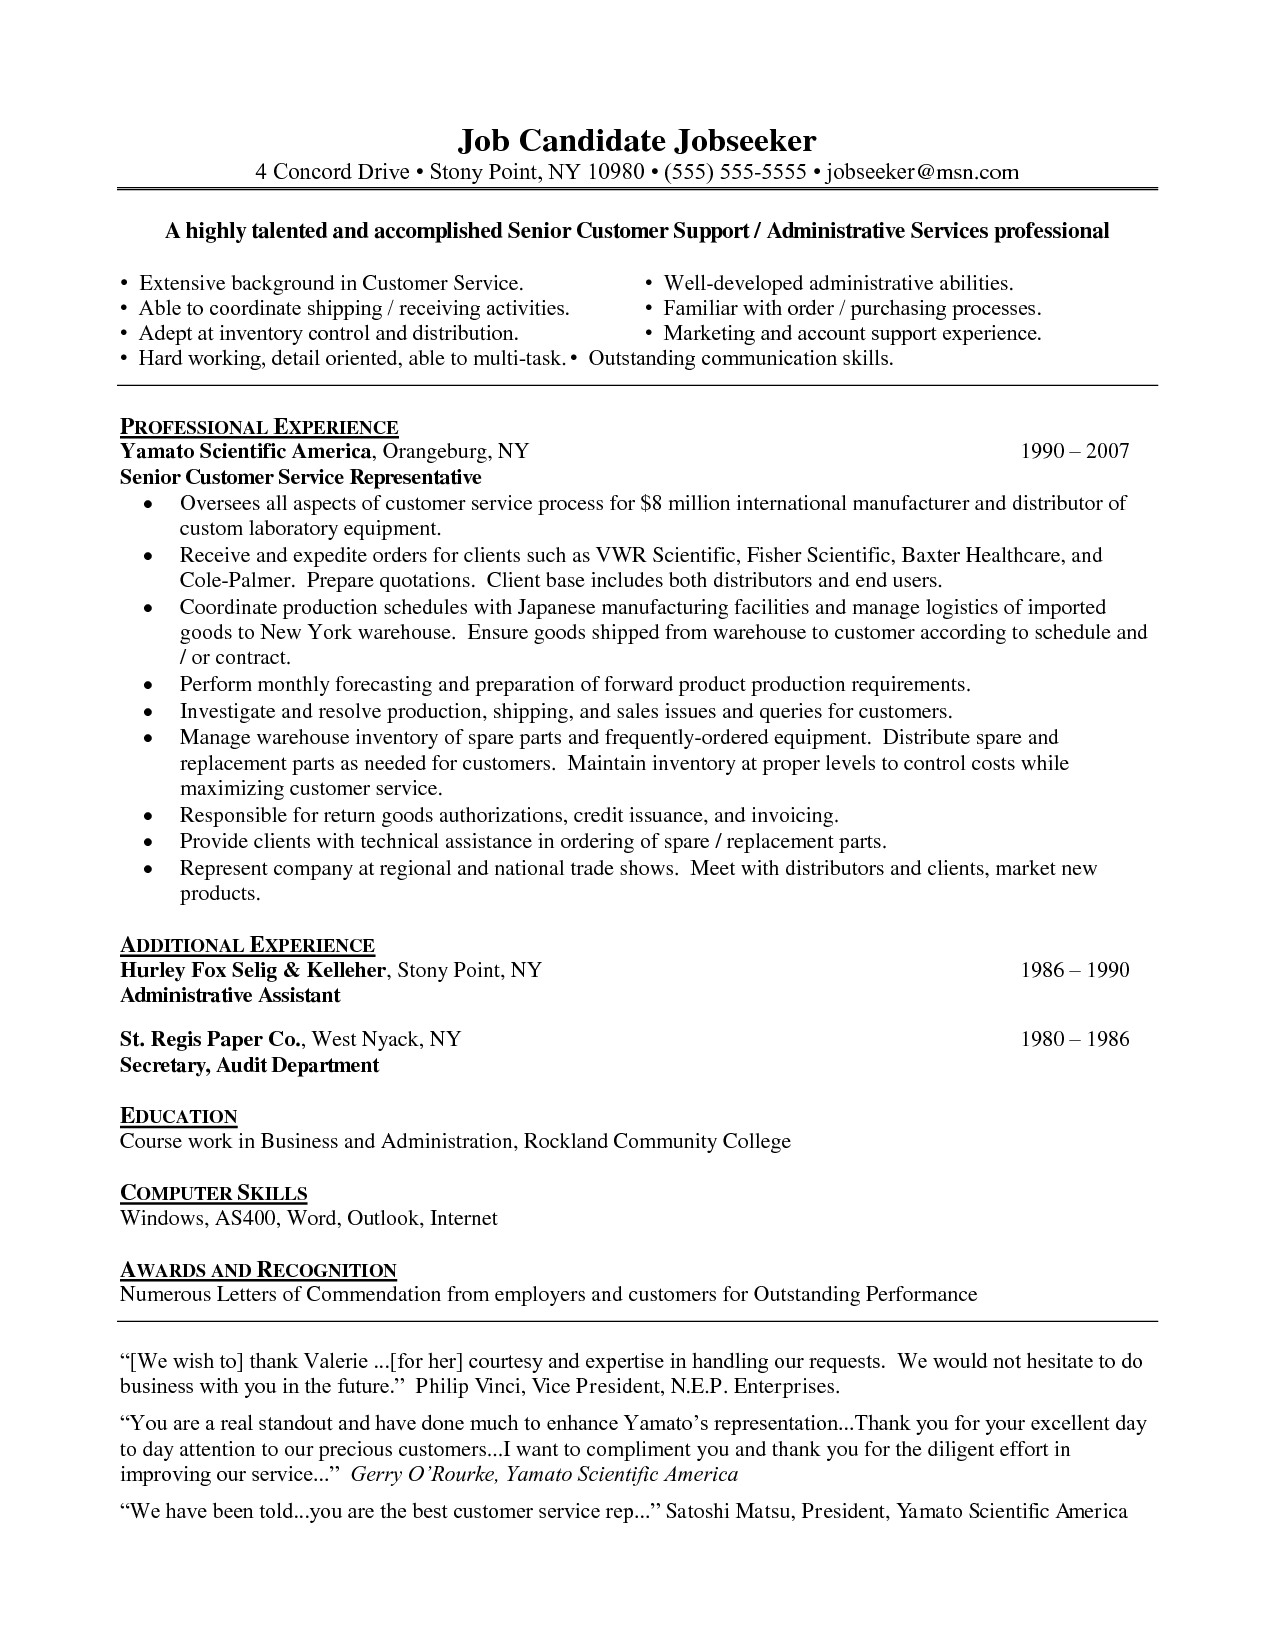 Resume Customer Service Skills Brilliant Resume Actuary Objective Bookkeeper Professional Entry Level Design Ideas